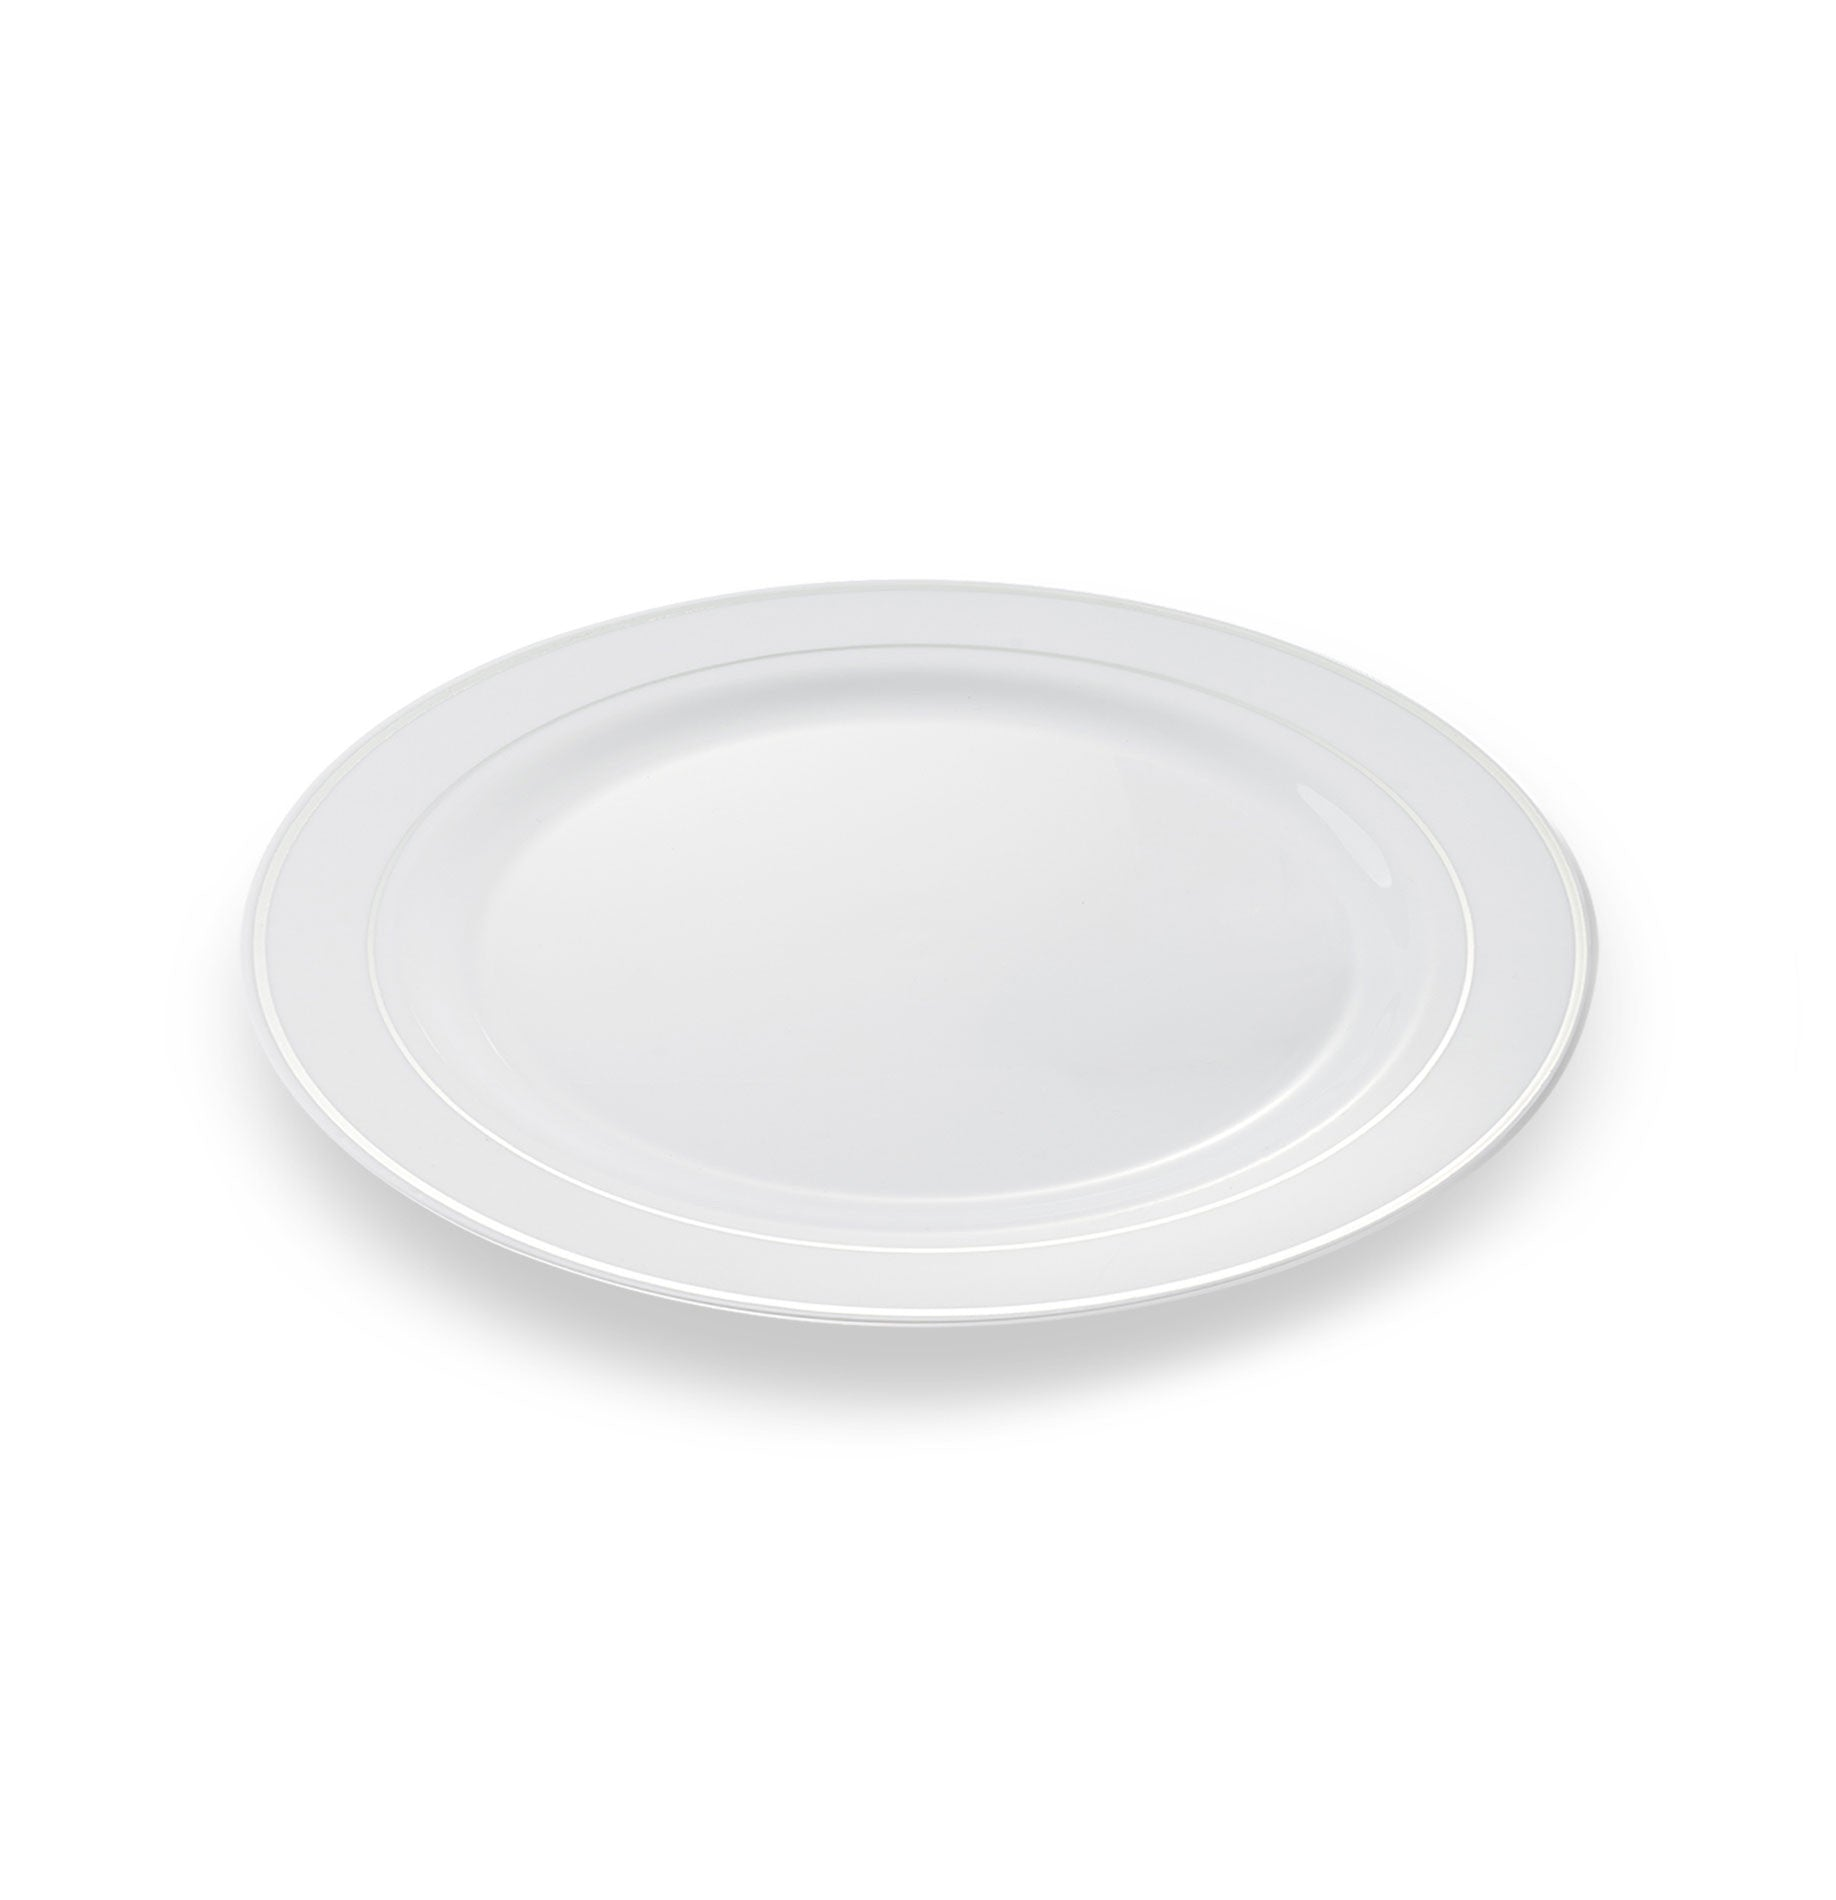 20 x Small Disposable Plates | Silver Rim 7.5\  (19cm)  sc 1 st  Simply Disposables & x Small Disposable Plates | Silver Rim 7.5"|1836|1900|?|412feeb34fe6829f79a8b863fe7231be|False|UNLIKELY|0.3122034966945648